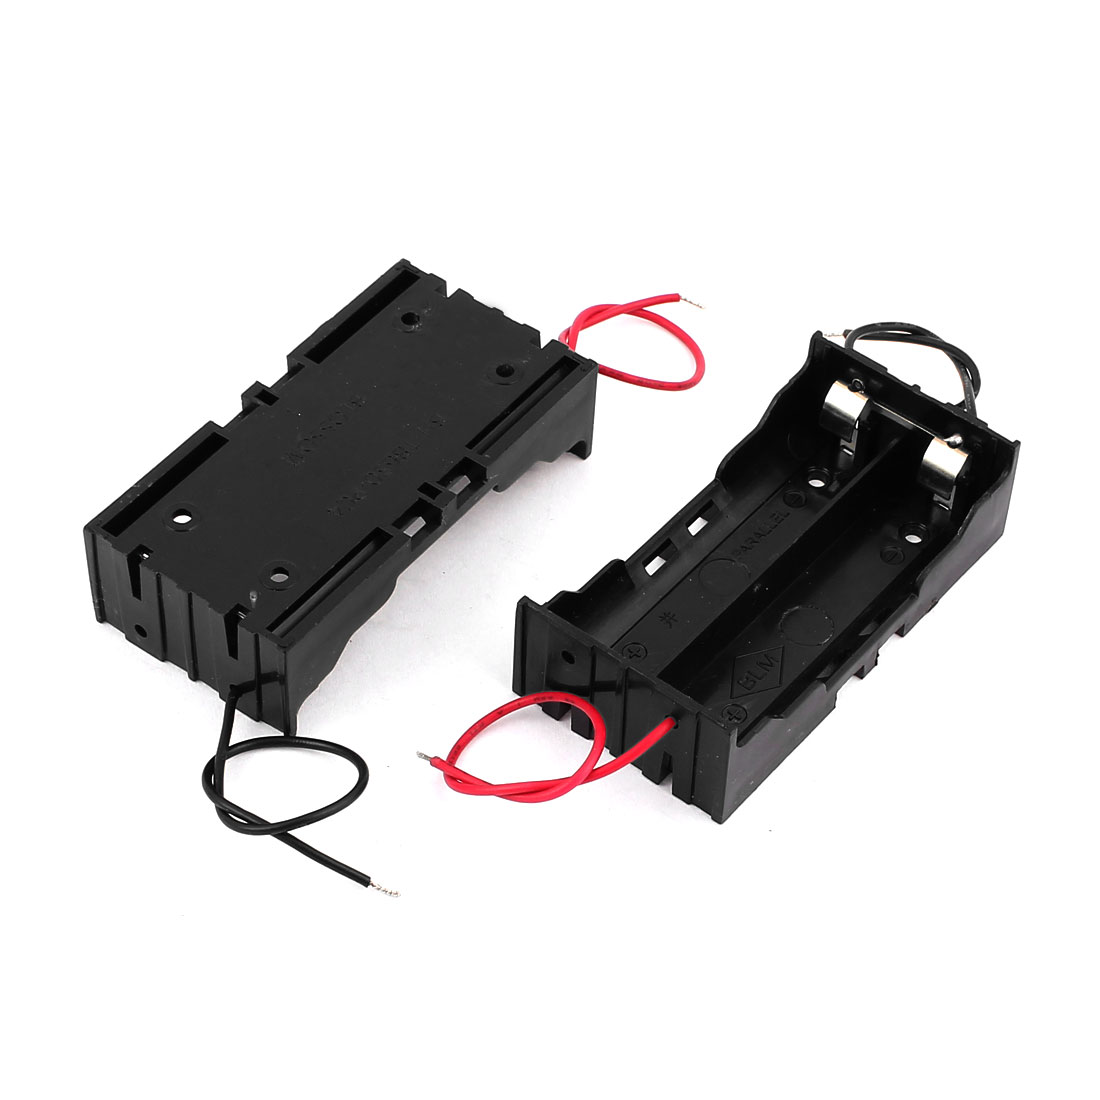 2Pcs Plastic 2 x 18650 Li-ion Battery Storage Holder Case Box Black